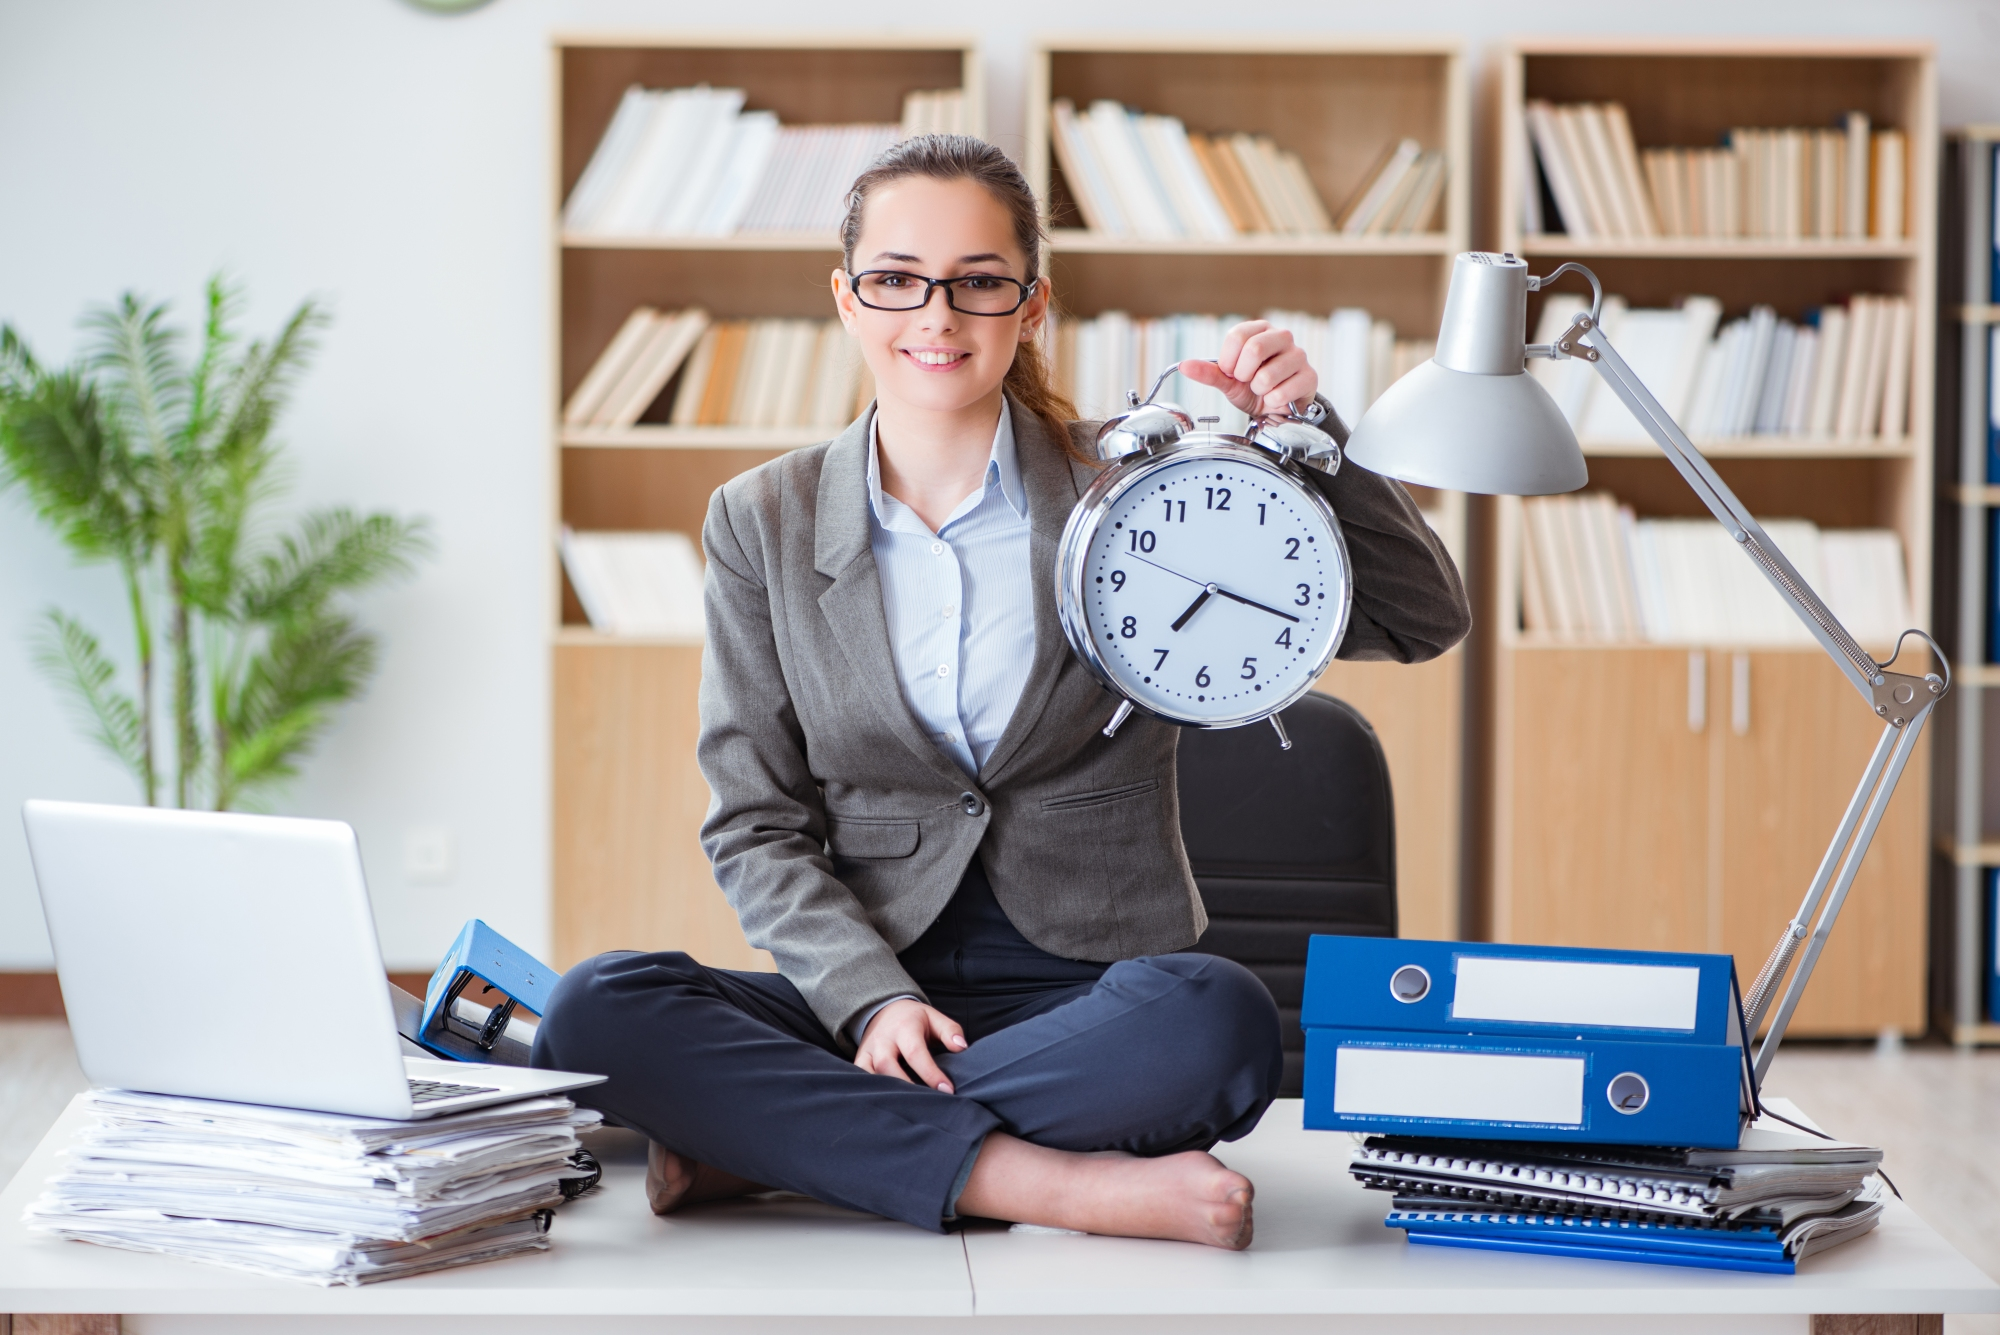 Business woman holding up a large clock